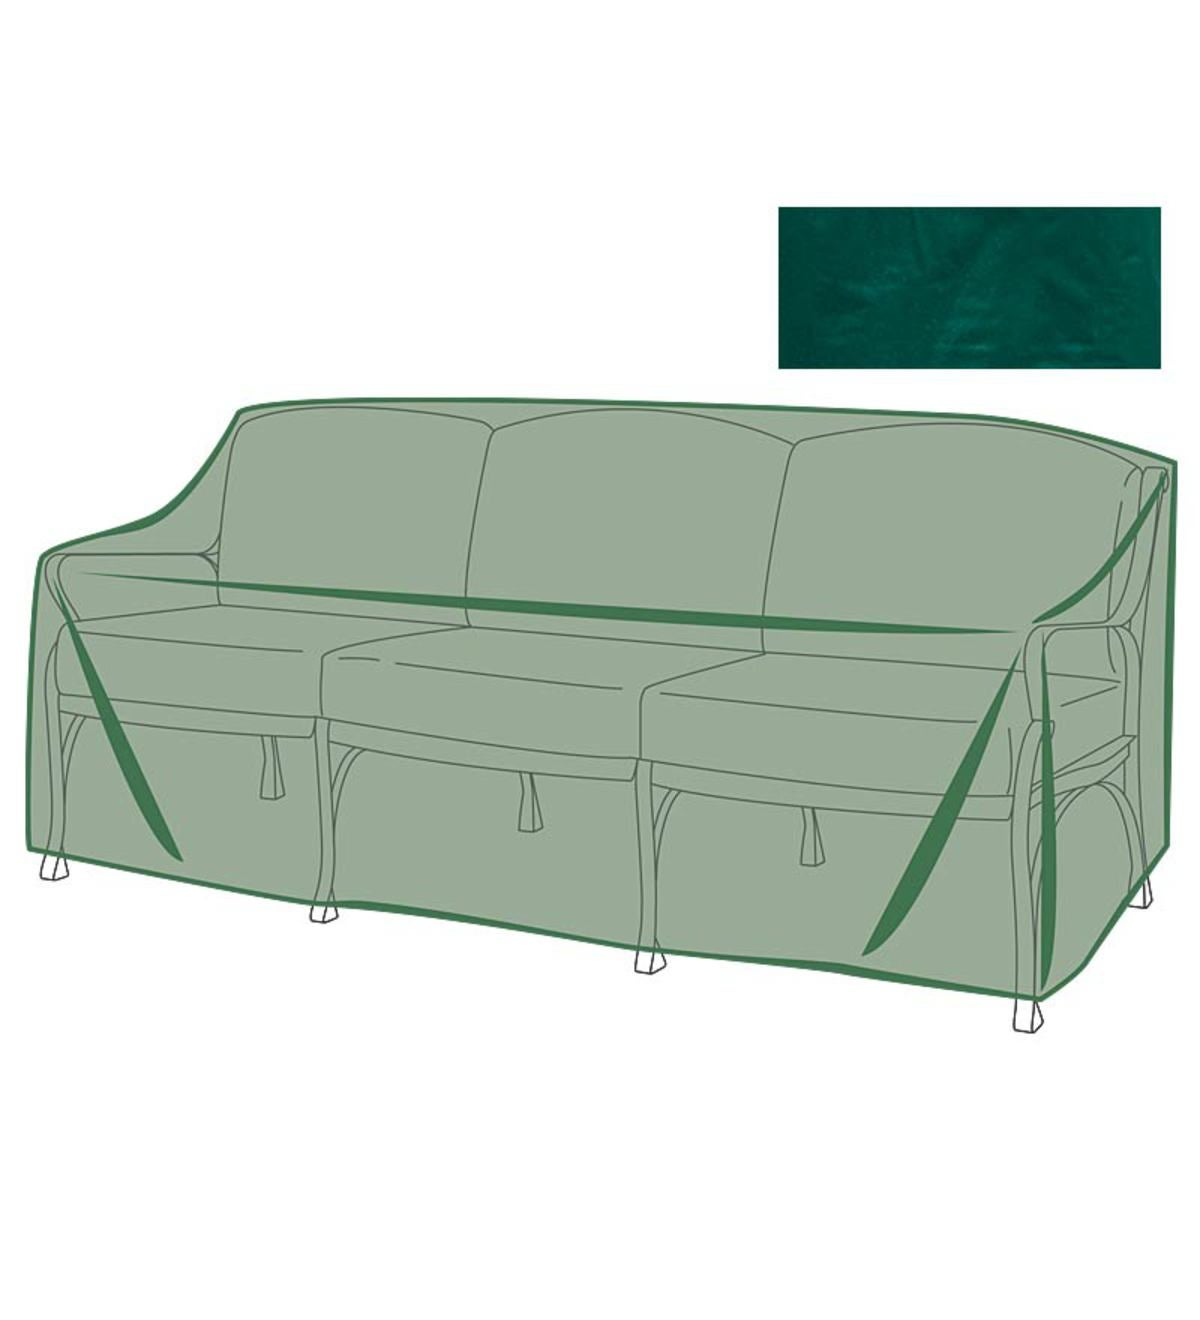 Classic Outdoor Furniture All-Weather Cover for Sofa